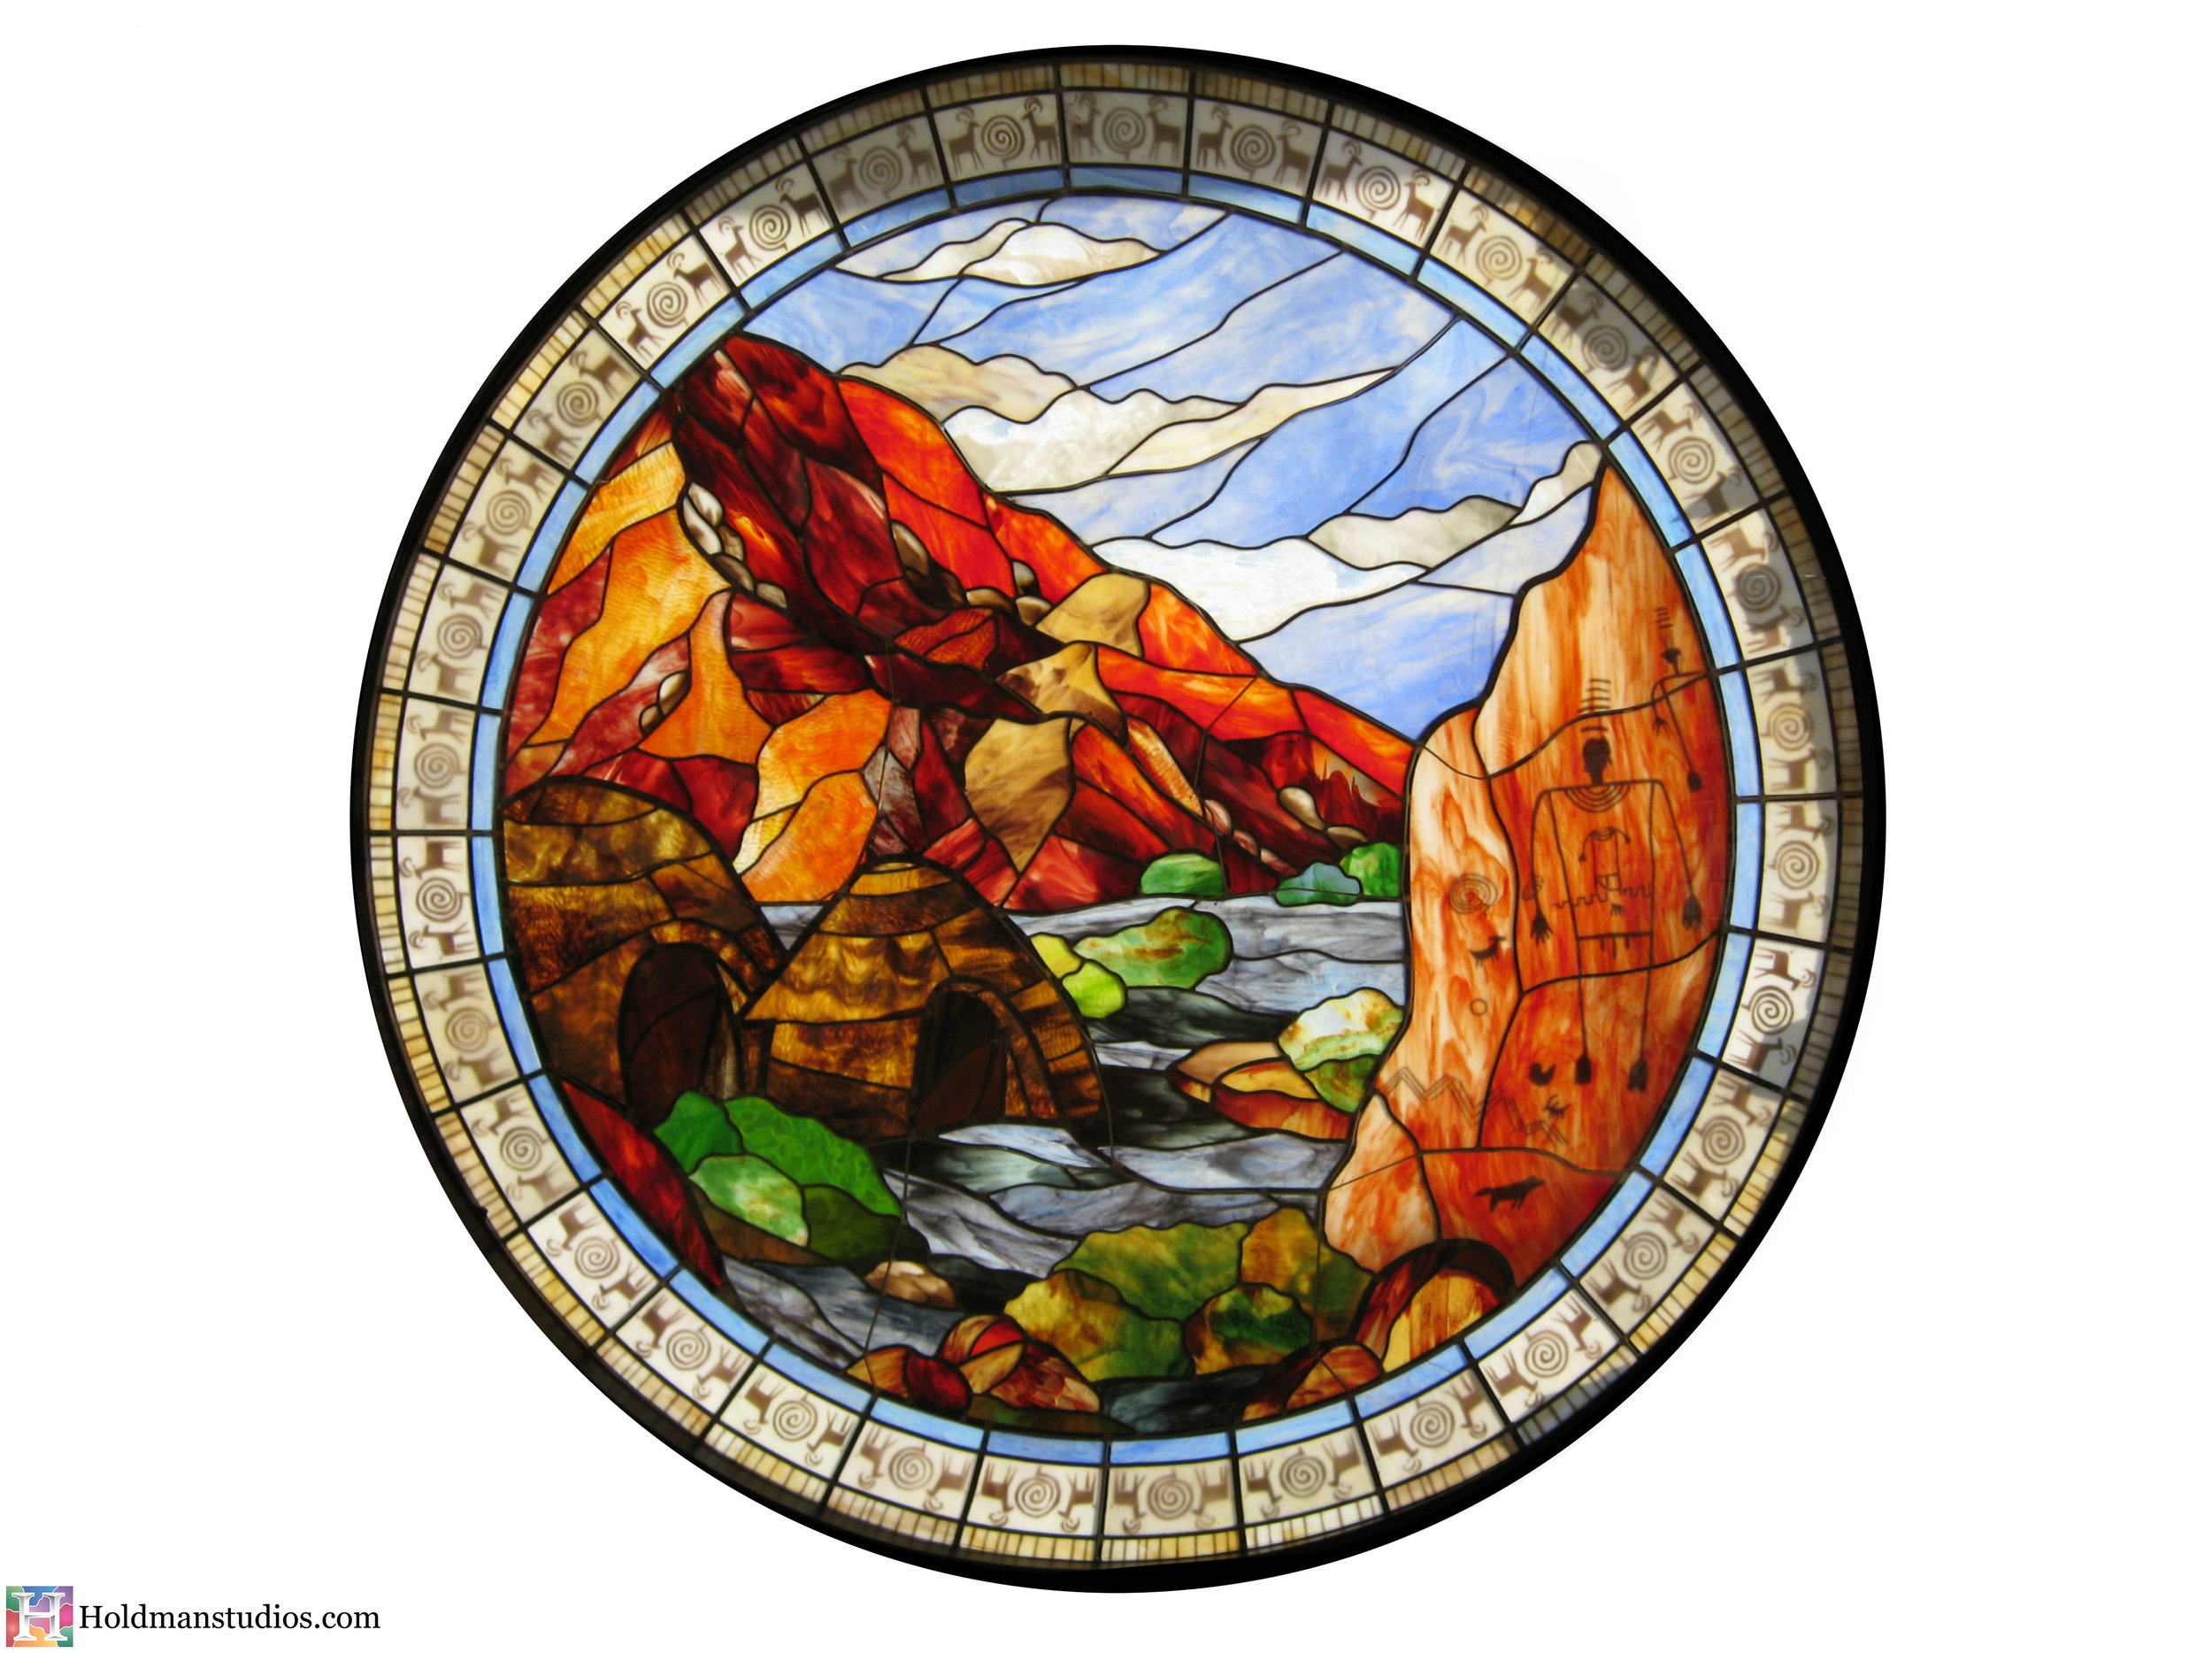 holdman-studios-stained-glass-window-st-george-town-square-river-mountains-trees-sky-clouds-native-american-symbols-writings.jpg